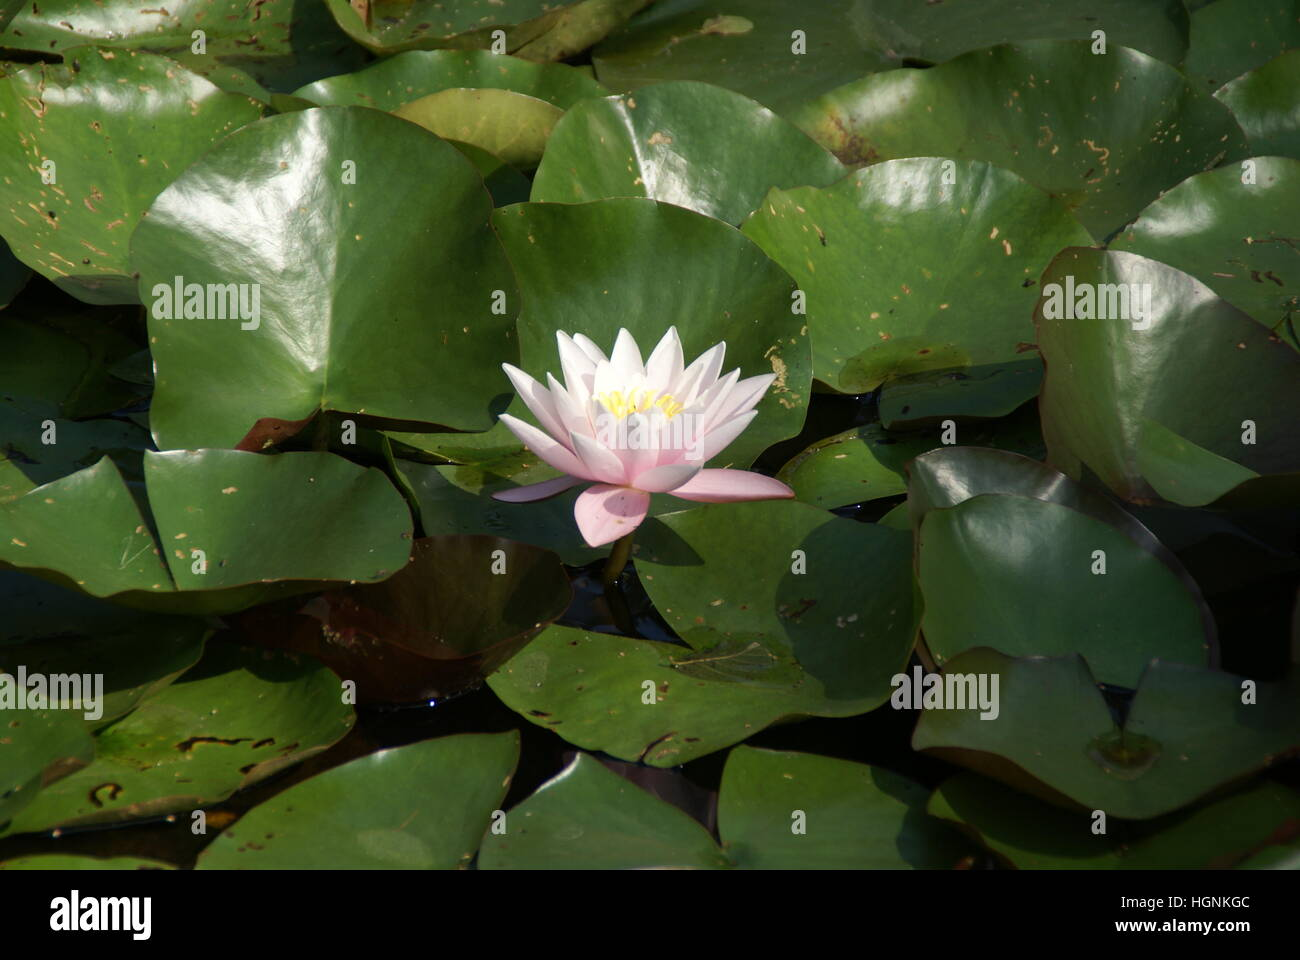 A water lily blooming in a pond. - Stock Image